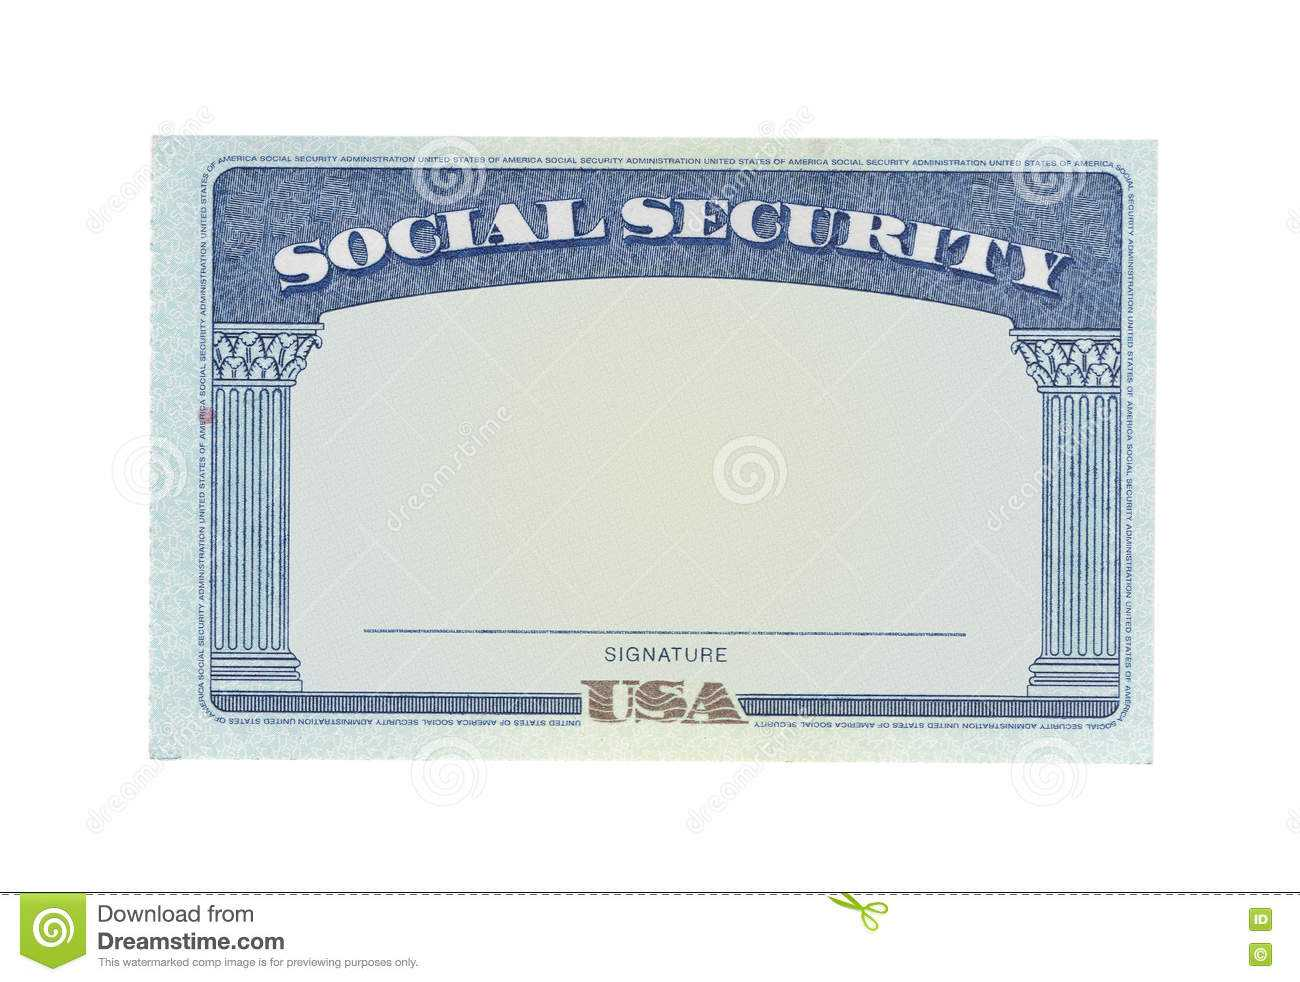 Blank Social Security Card Template Download - Great With Blank Social Security Card Template Download